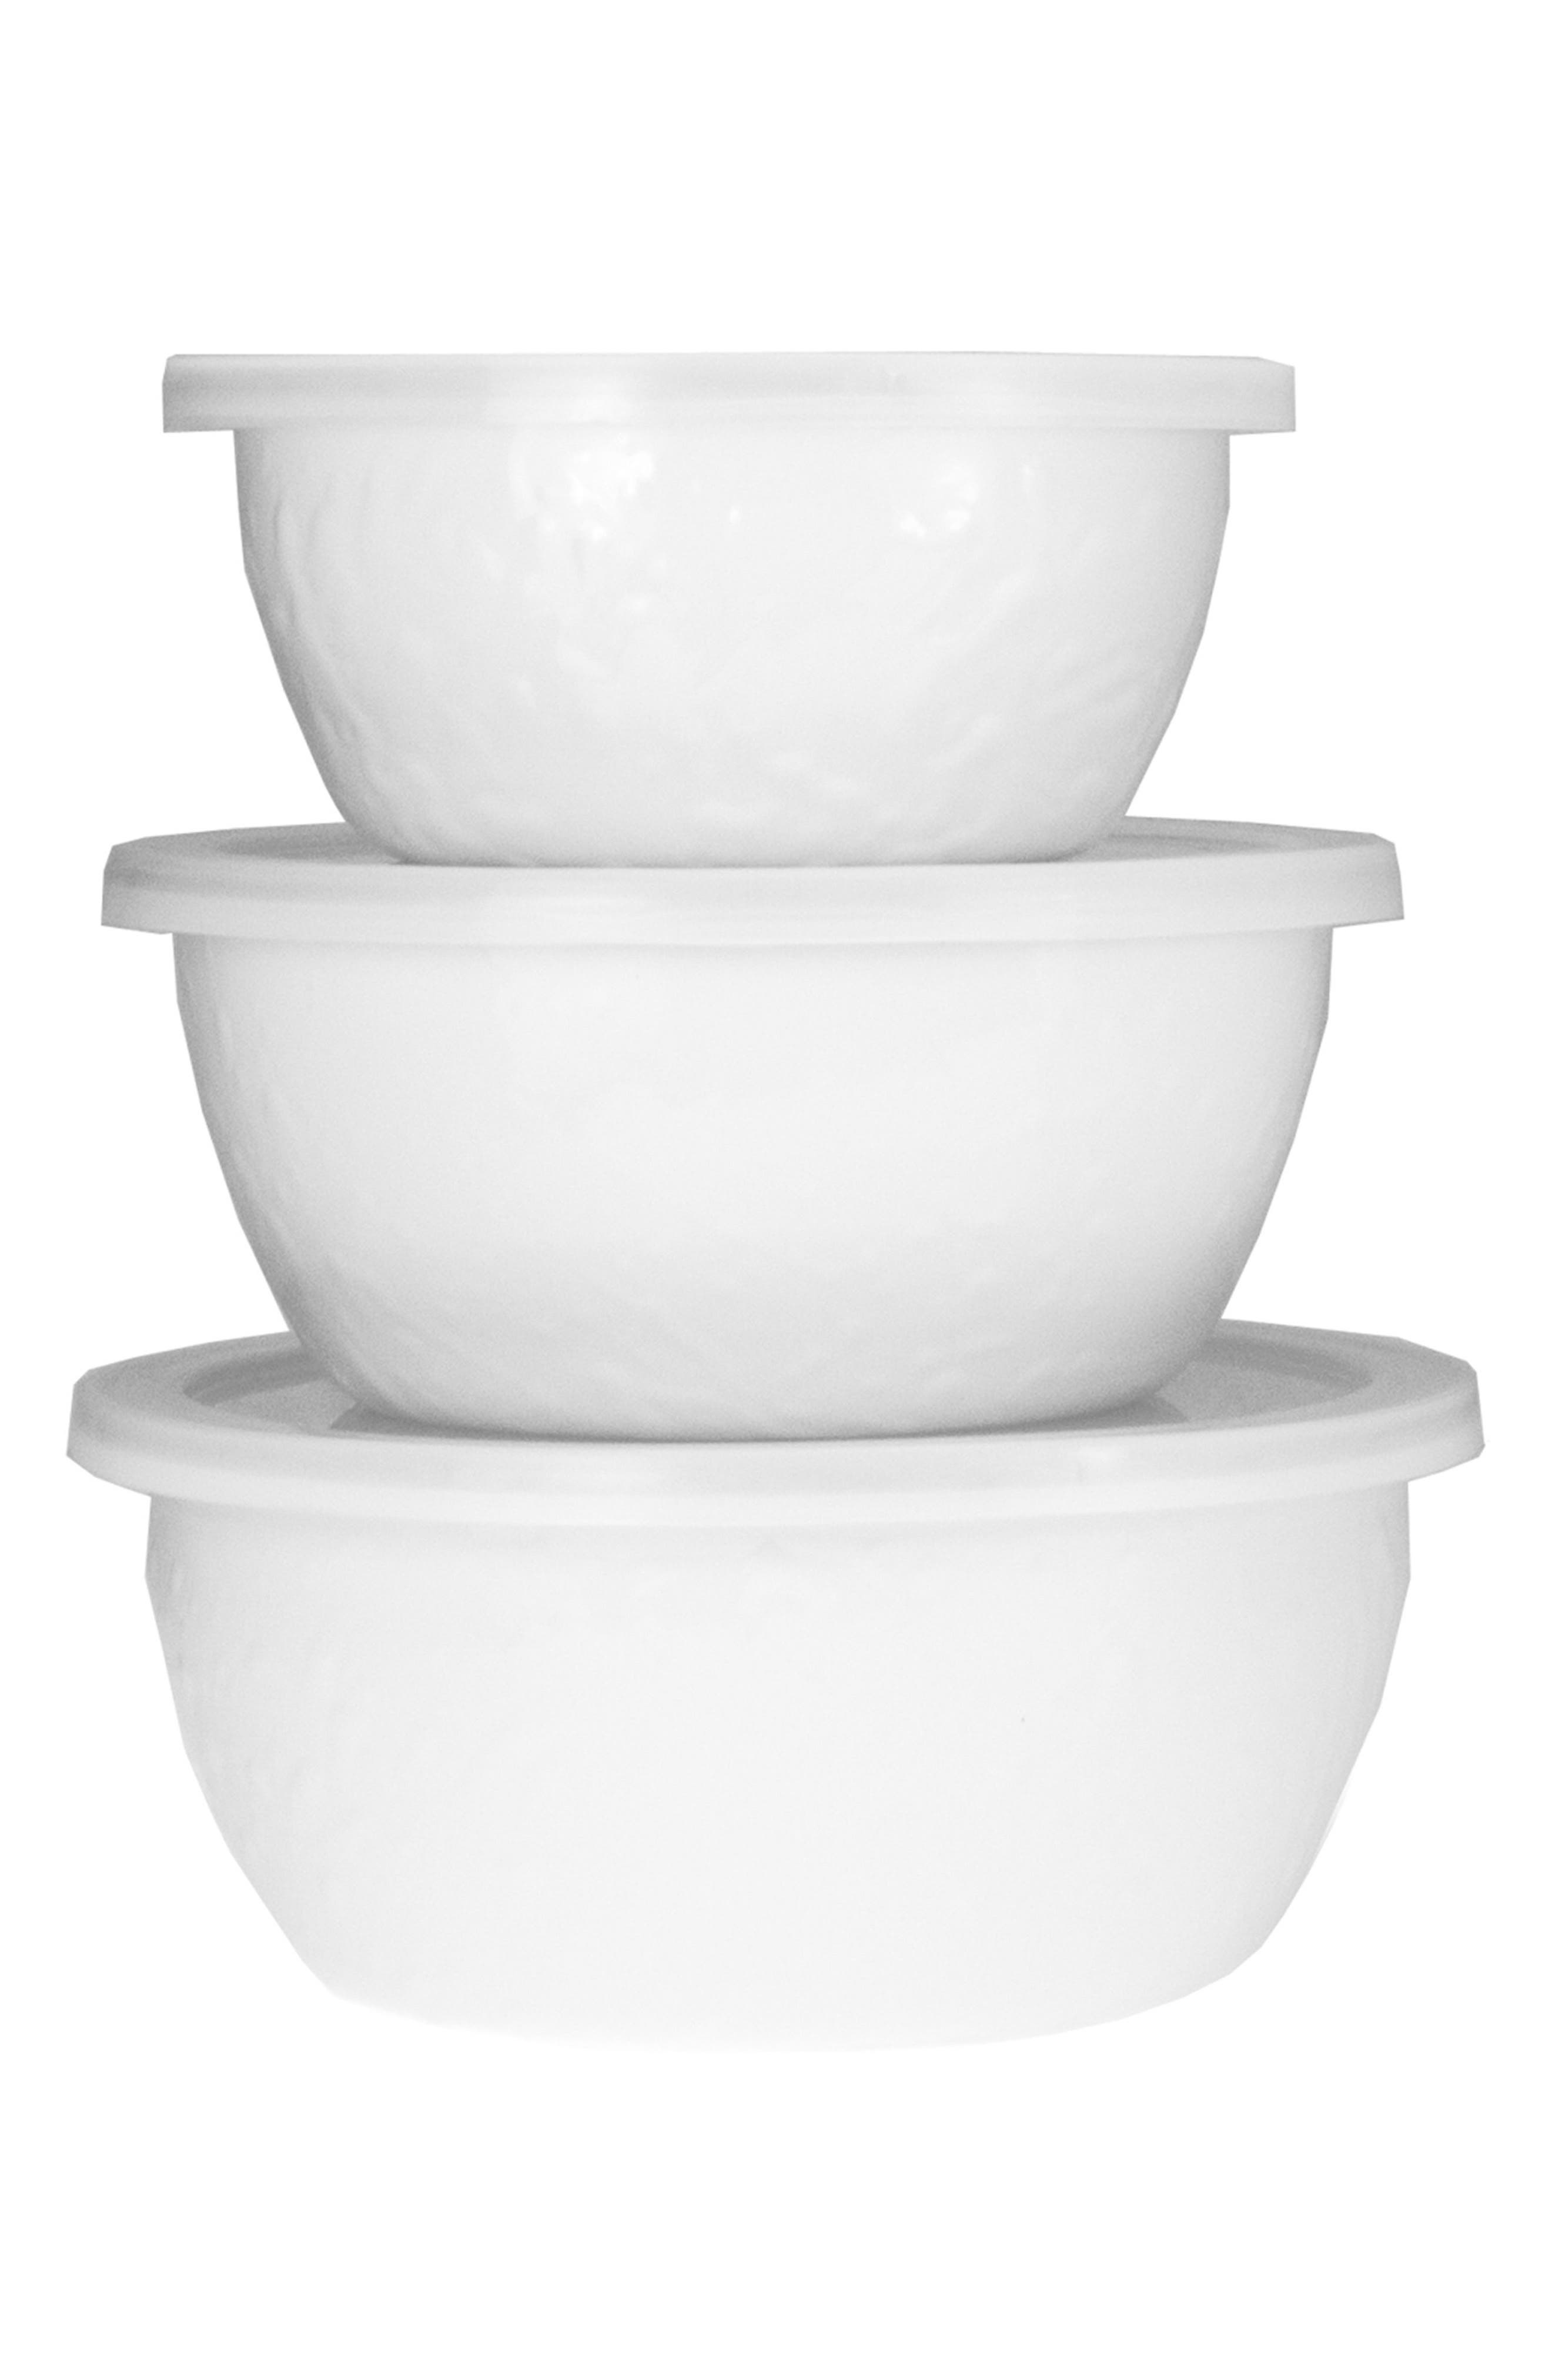 Set of 3 Nesting Bowls,                             Main thumbnail 1, color,                             SOLID WHITE